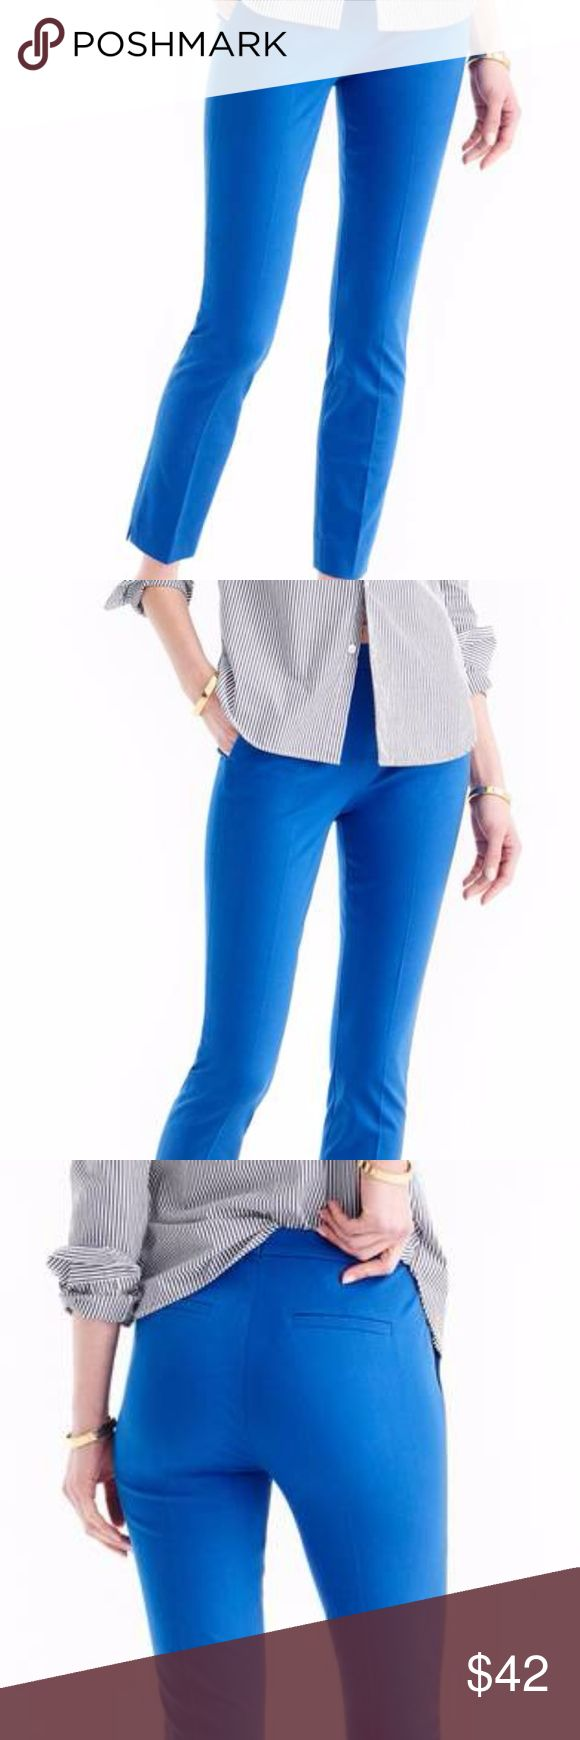 J. Crew Blue Trouser Dress Pants 8 Great used condition. Worn twice. Zip in the front. J. Crew Pants Straight Leg